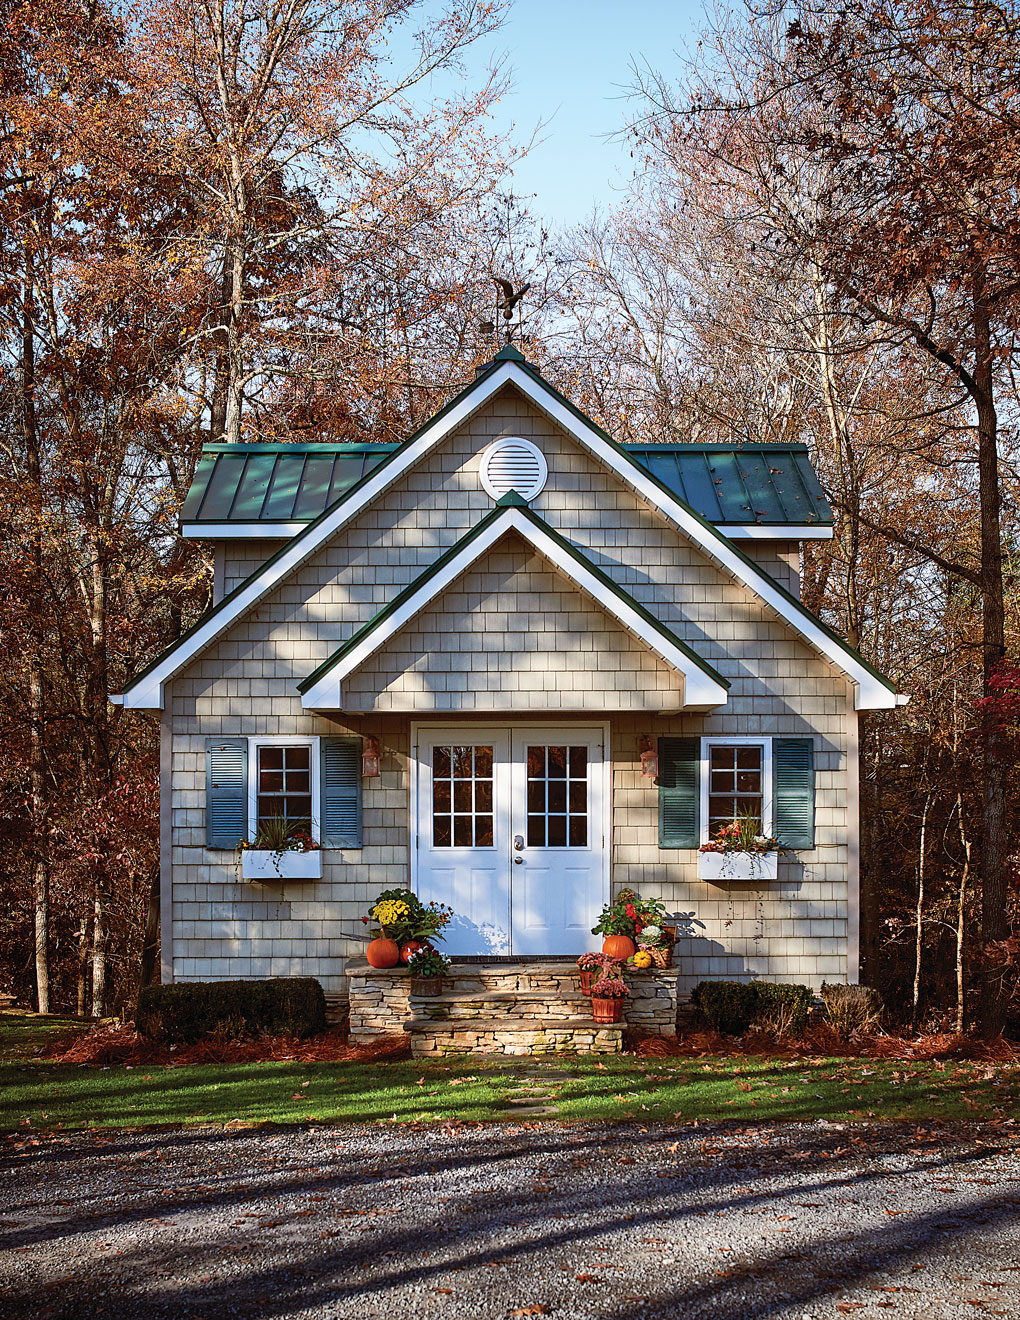 Exterior view of a cottage styled shed in the woods.